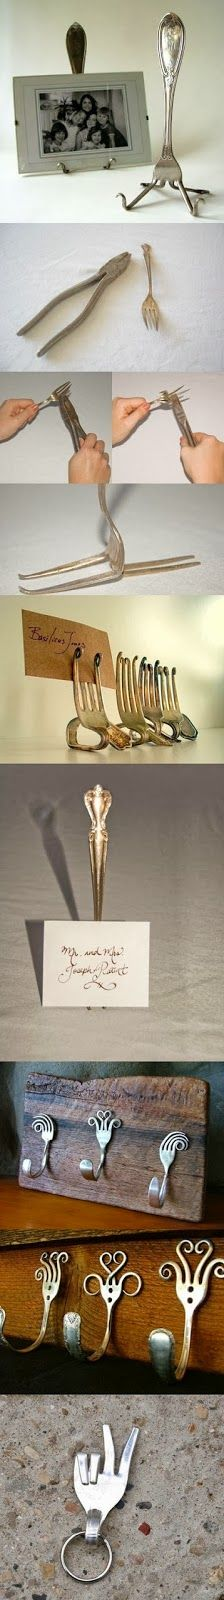 My DIY Projects: You could do so much with forks